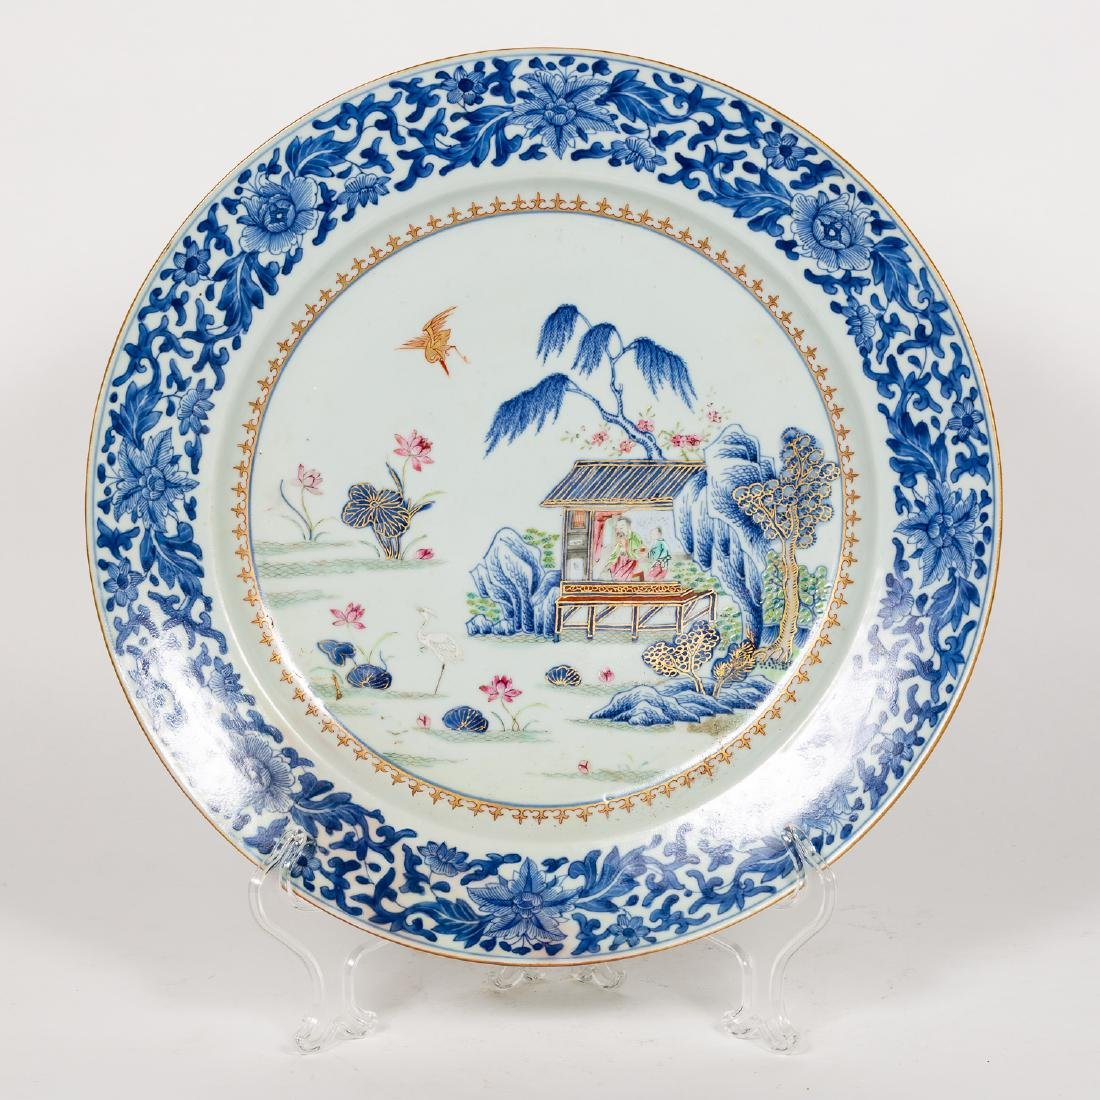 Chinese Porcelain Platter with Figural Scene